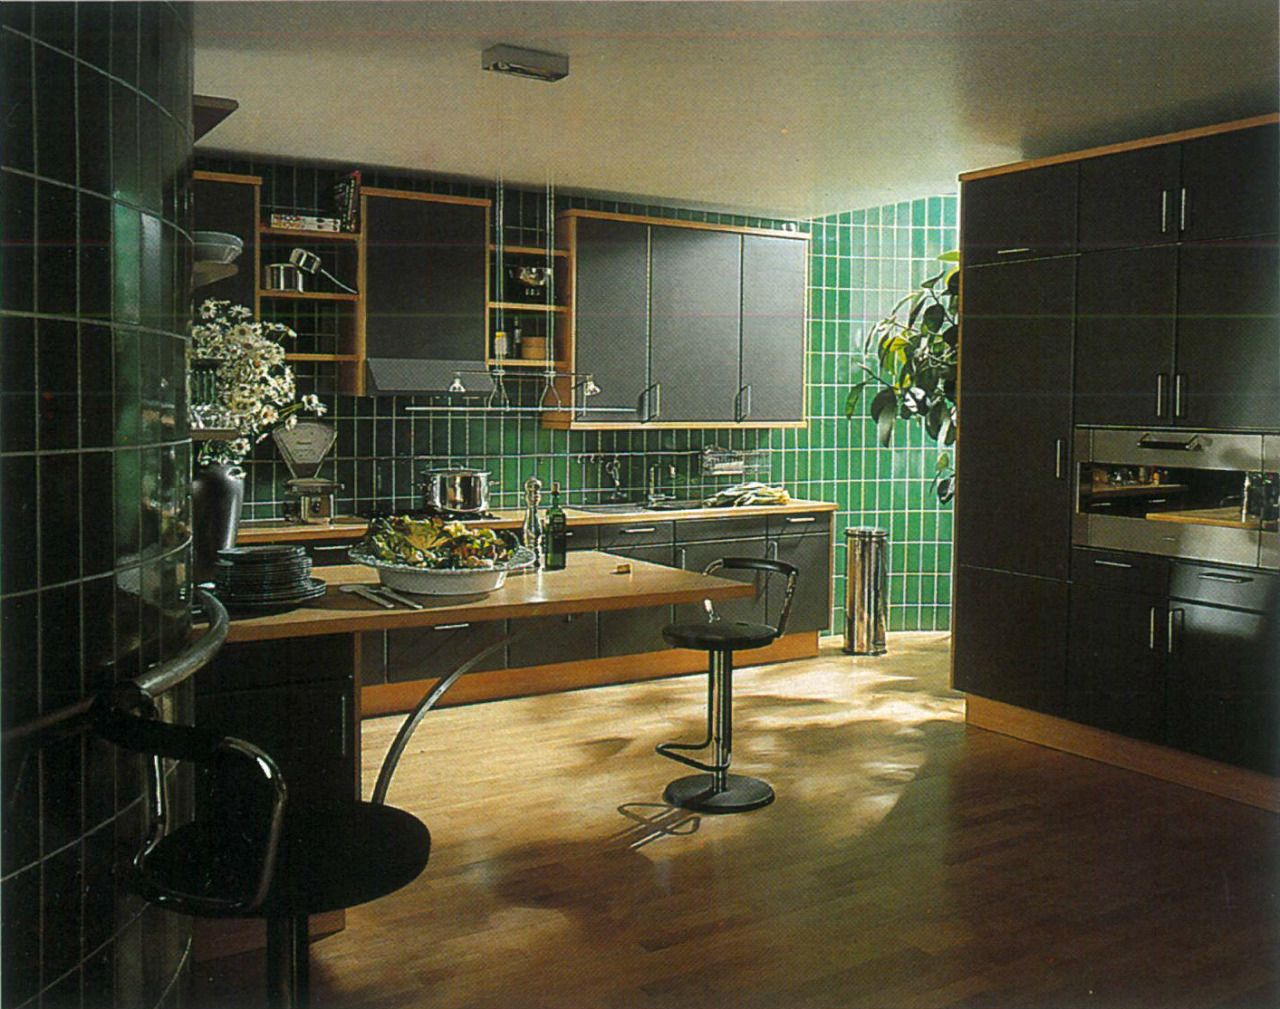 Siematic Kitchen 1988 Scan Retro Interior Design Vintage Interior Decor 80s Interior Design